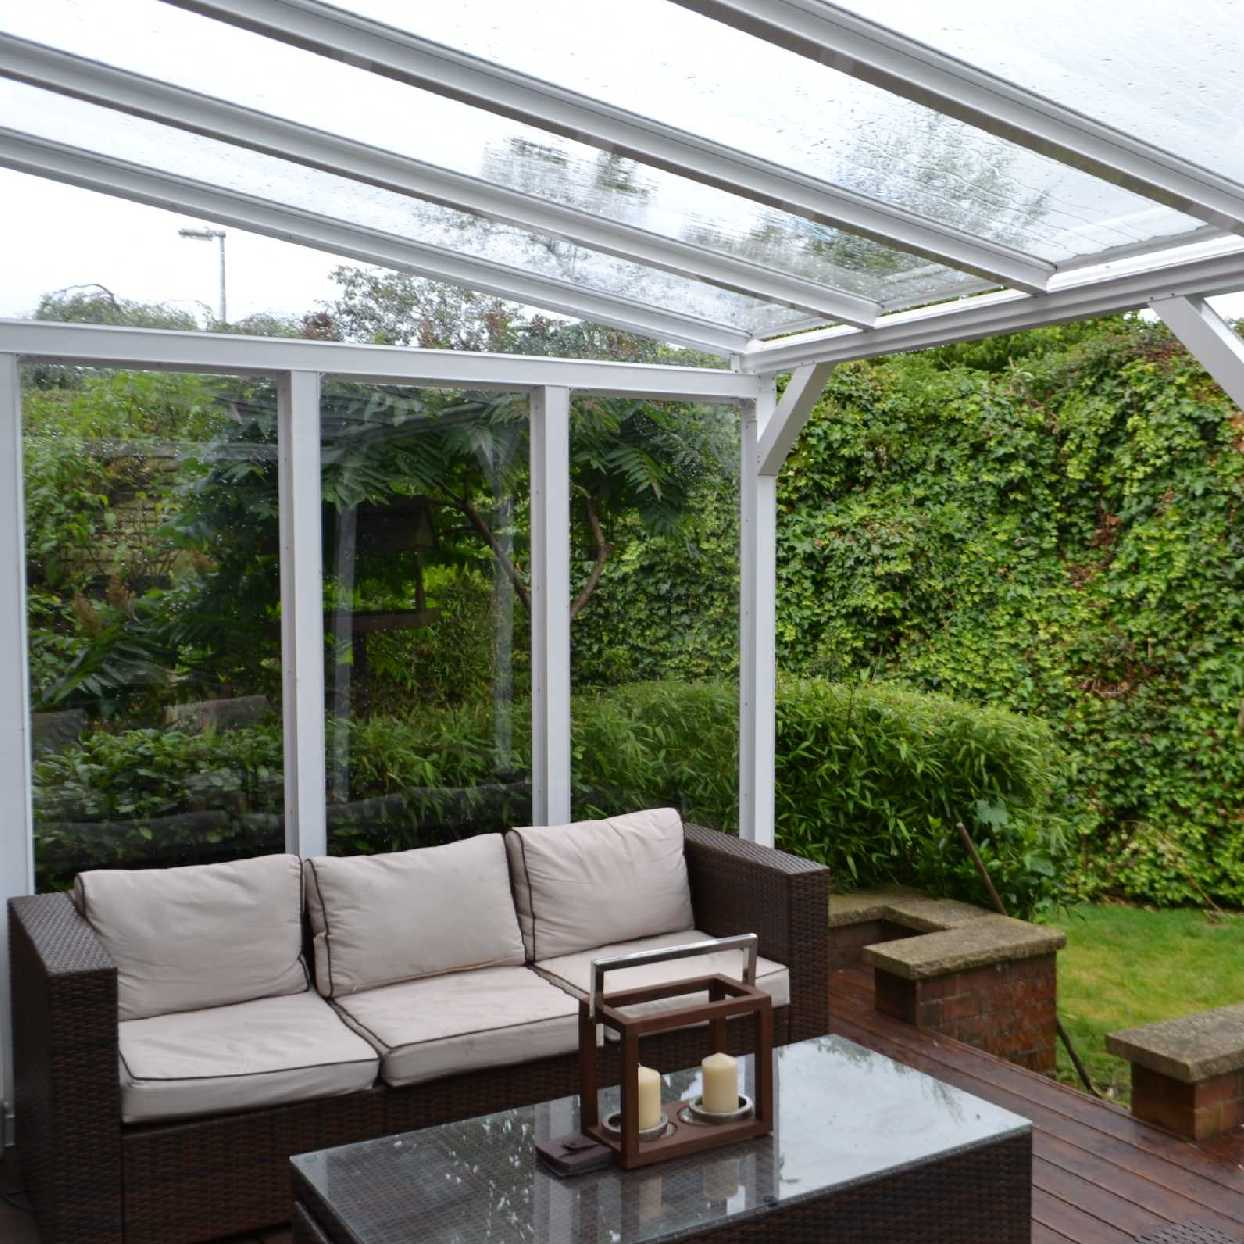 Omega Smart White Lean-To Canopy UNGLAZED for 6mm Glazing - 6.3m (W) x 1.5m (P), (4) Supporting Posts